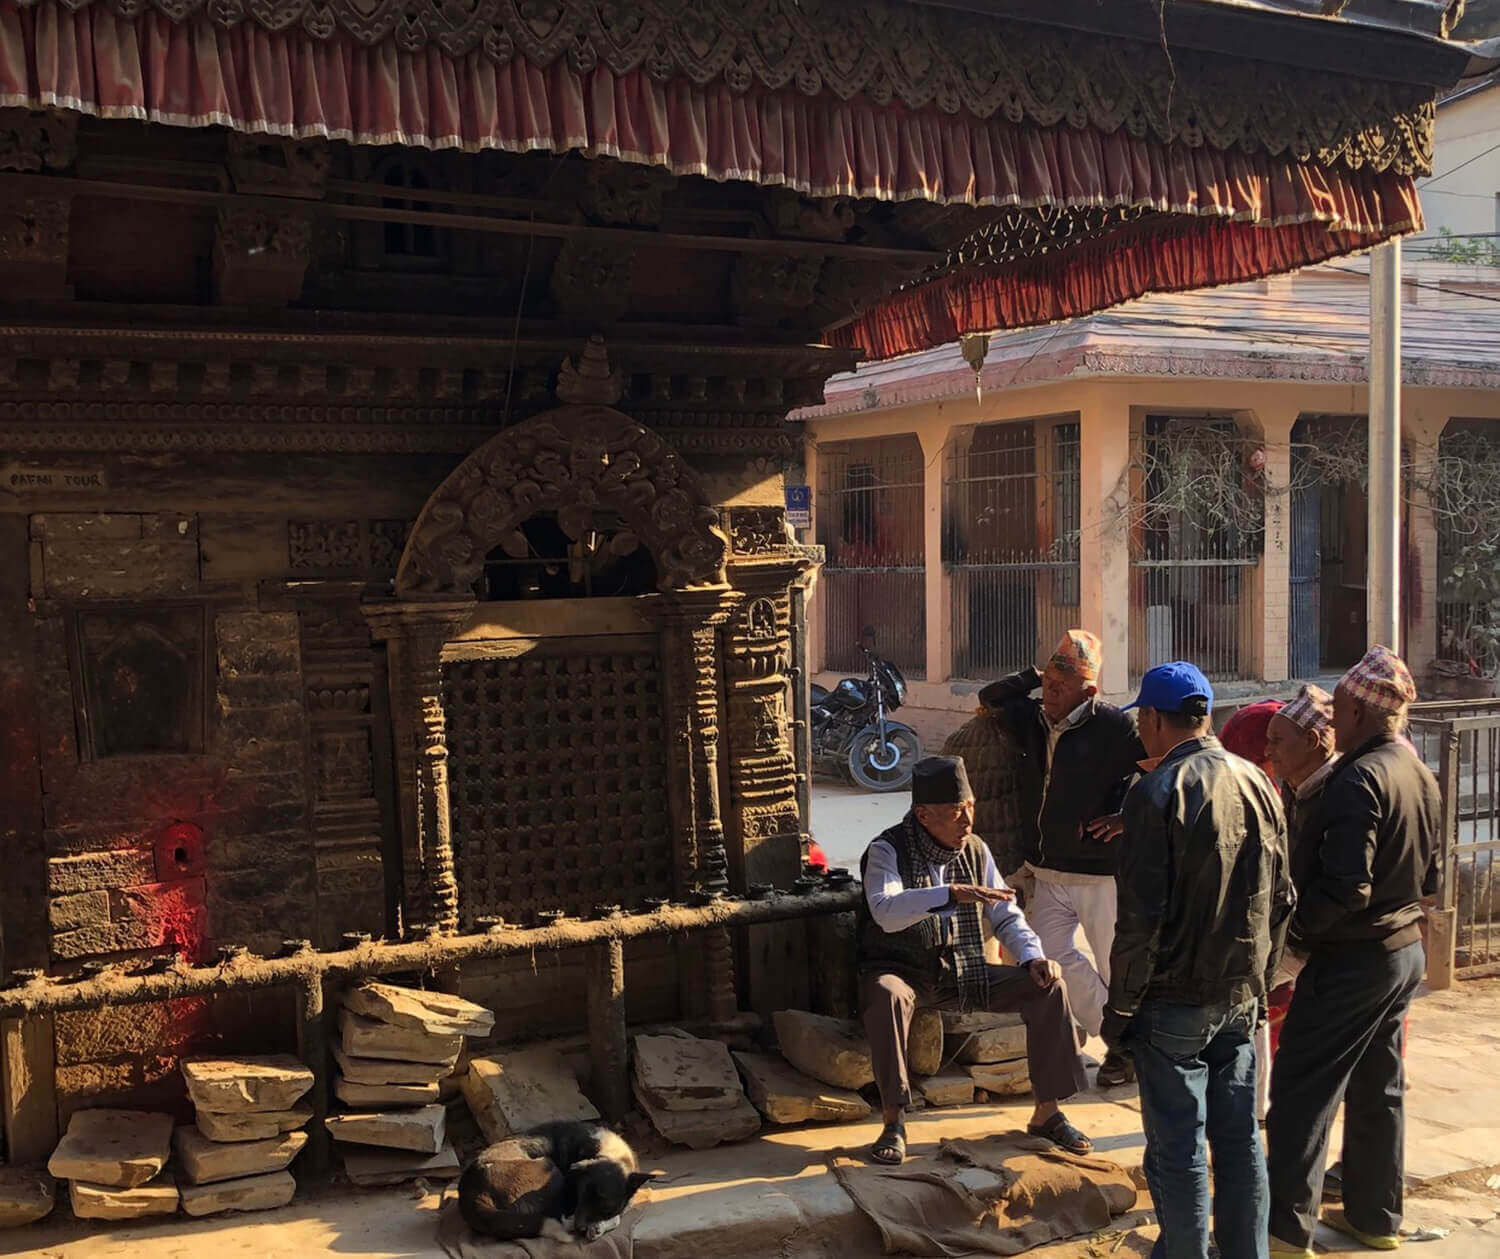 Patan neighbours meet up at a temple as a pale winter sun comes out after days of overcast skies and rain in Kathmandu Valley.